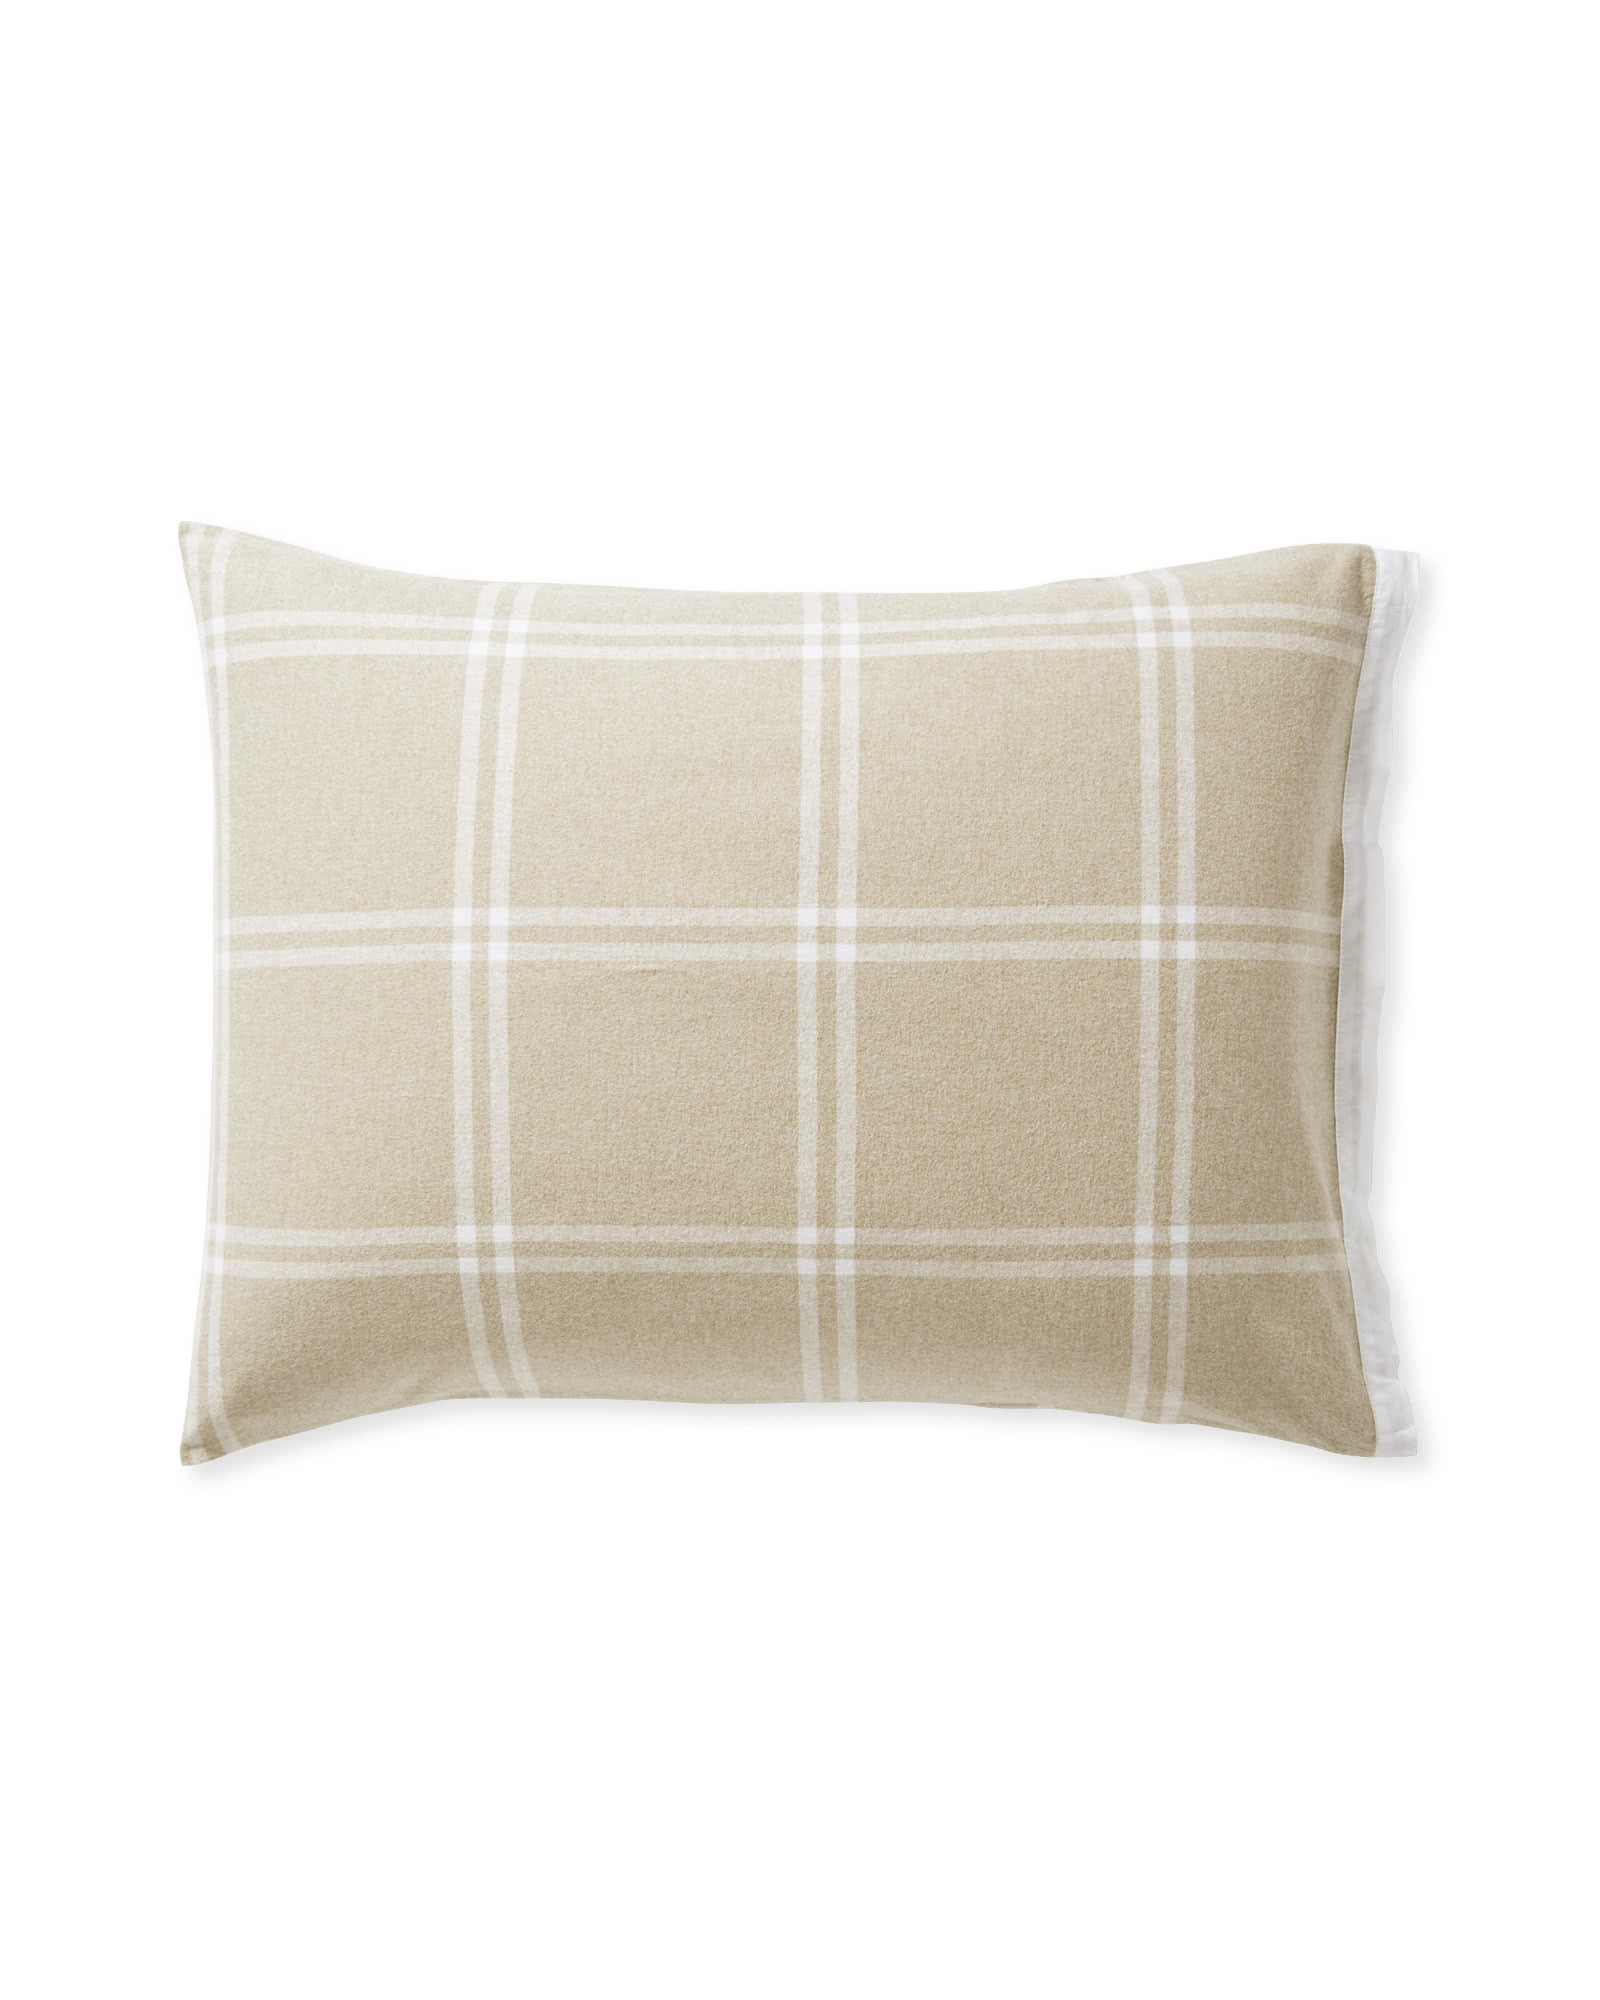 Alpine Flannel Pillowcases (Extra Set of 2), Camel